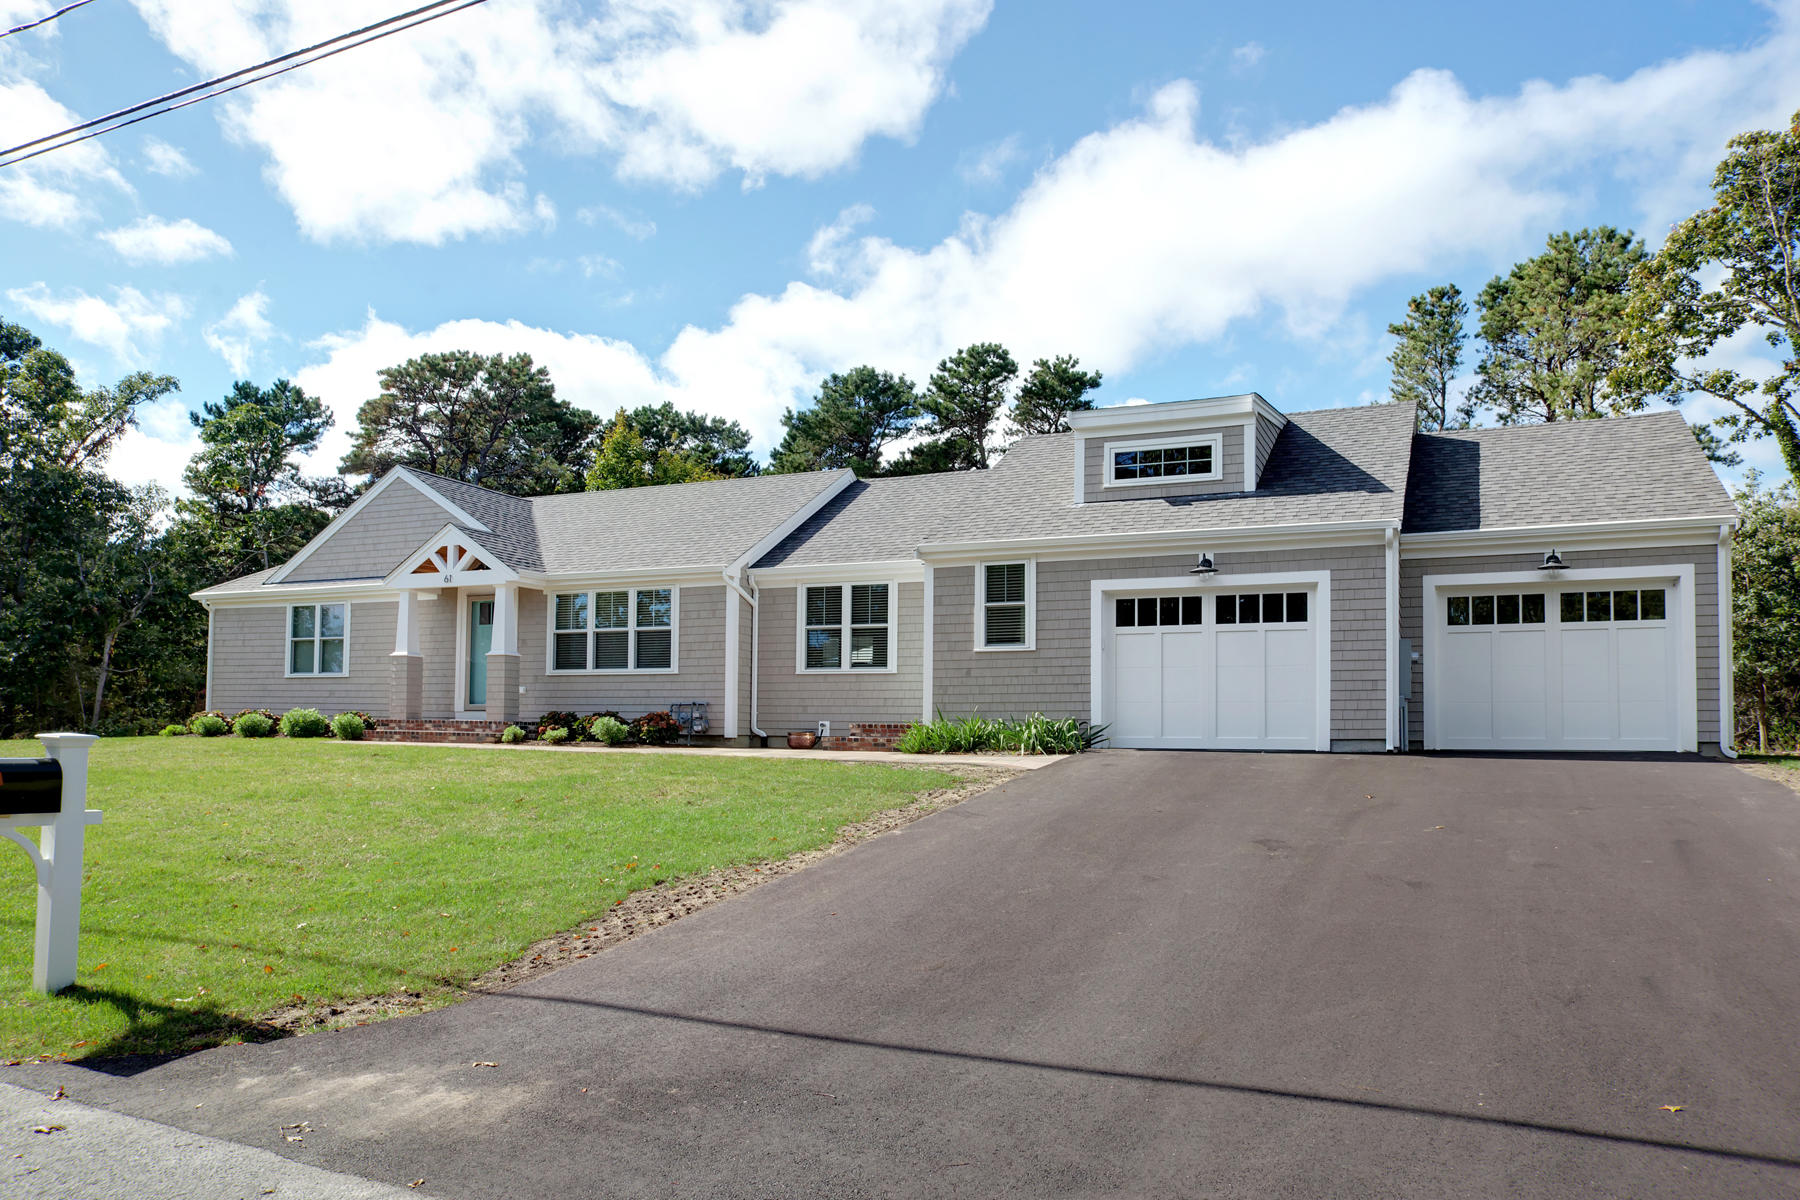 61 Lookout Road, Yarmouth Port MA, 02675 details